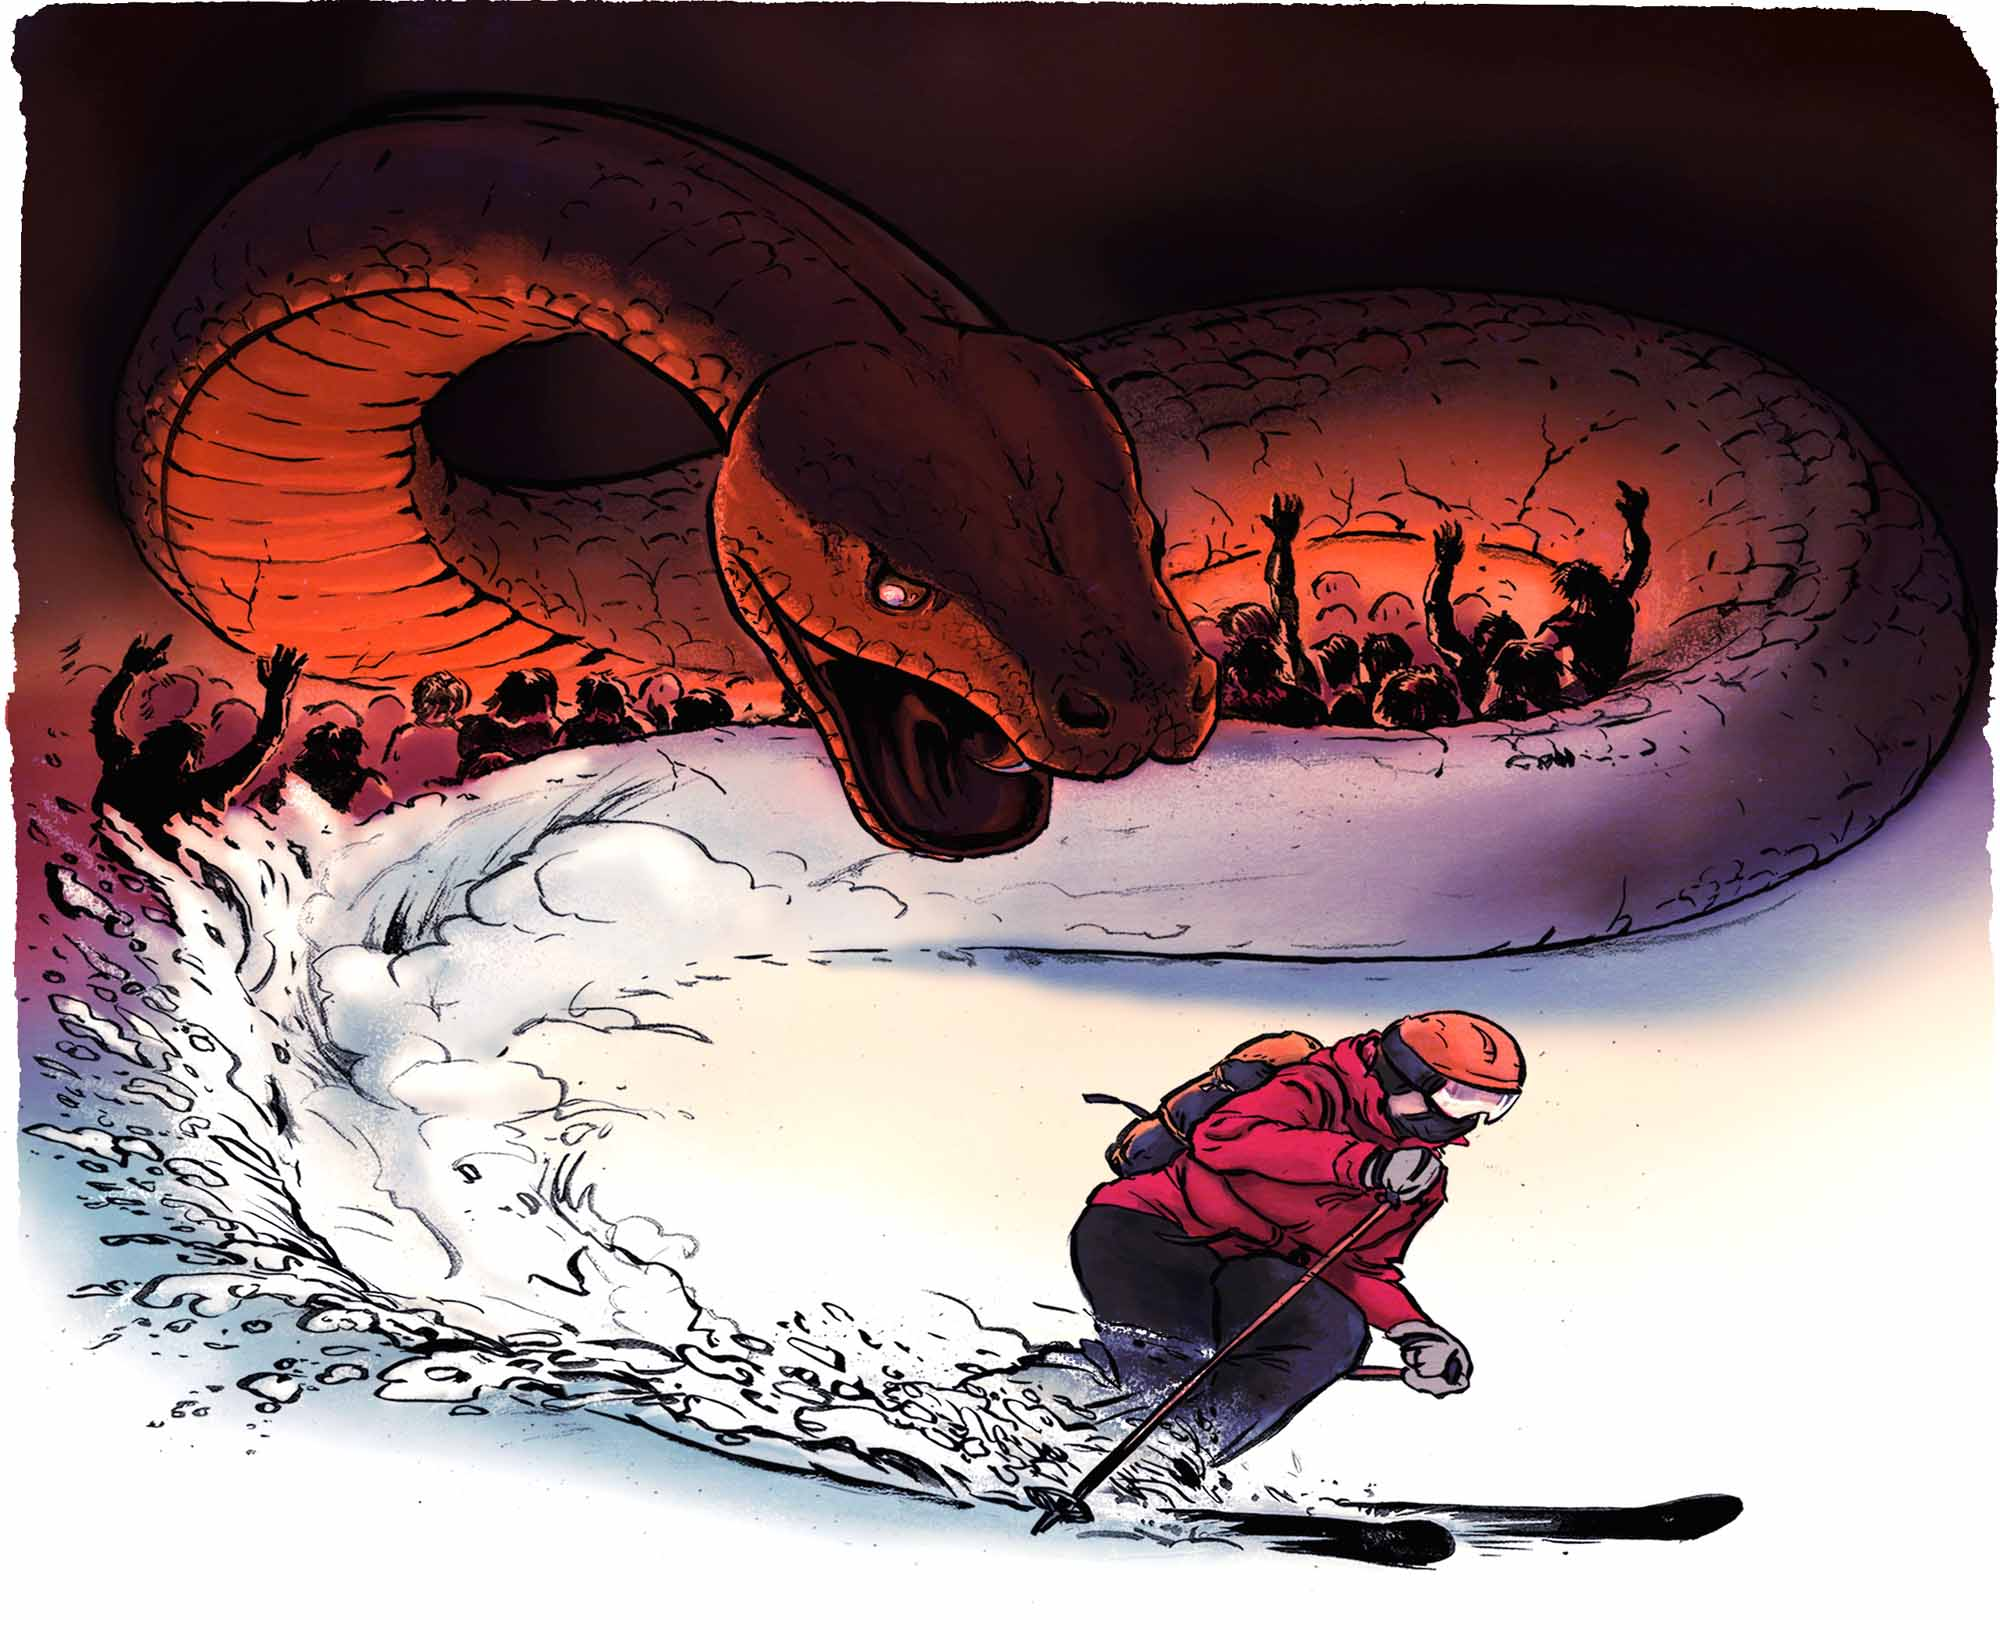 Big-Brain-No-Tools-Searching-for-Survival-snake-and-skier-Dave-Barnes-illustration